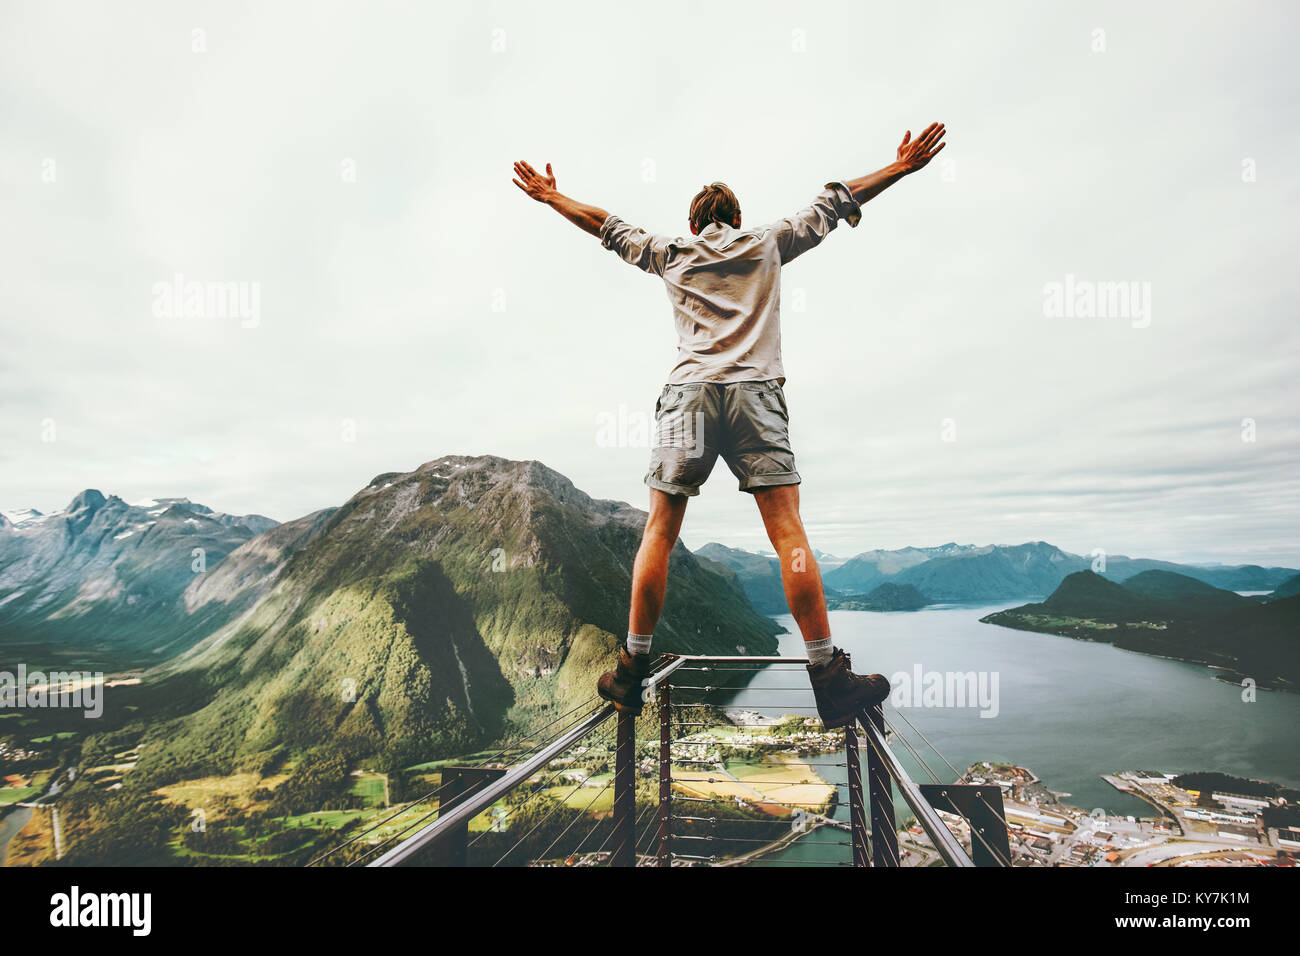 Man raised hands balancing at the edge cliff Rampestreken landmark in Norway mountains Travel lifestyle risk concept - Stock Image